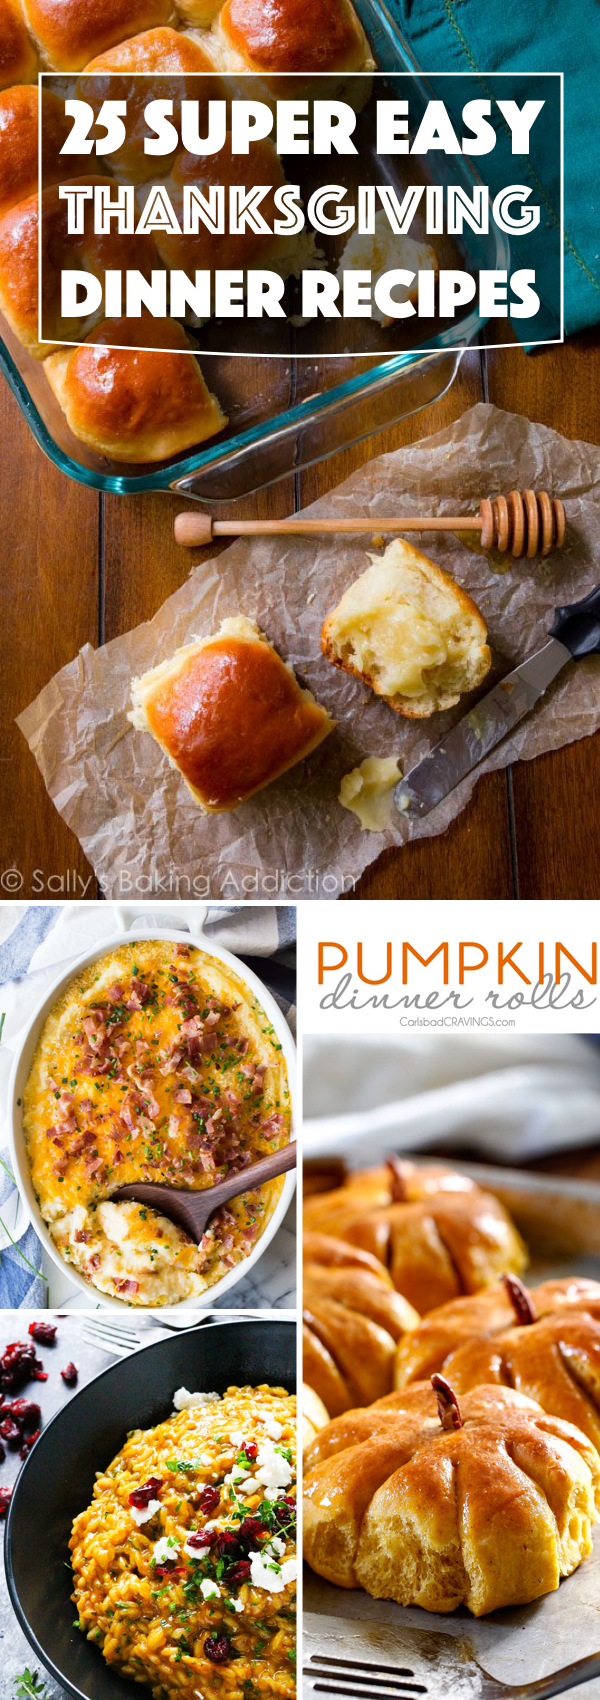 25 Super Easy and Quick Thanksgiving Dinner Recipes for a Succulent Meal